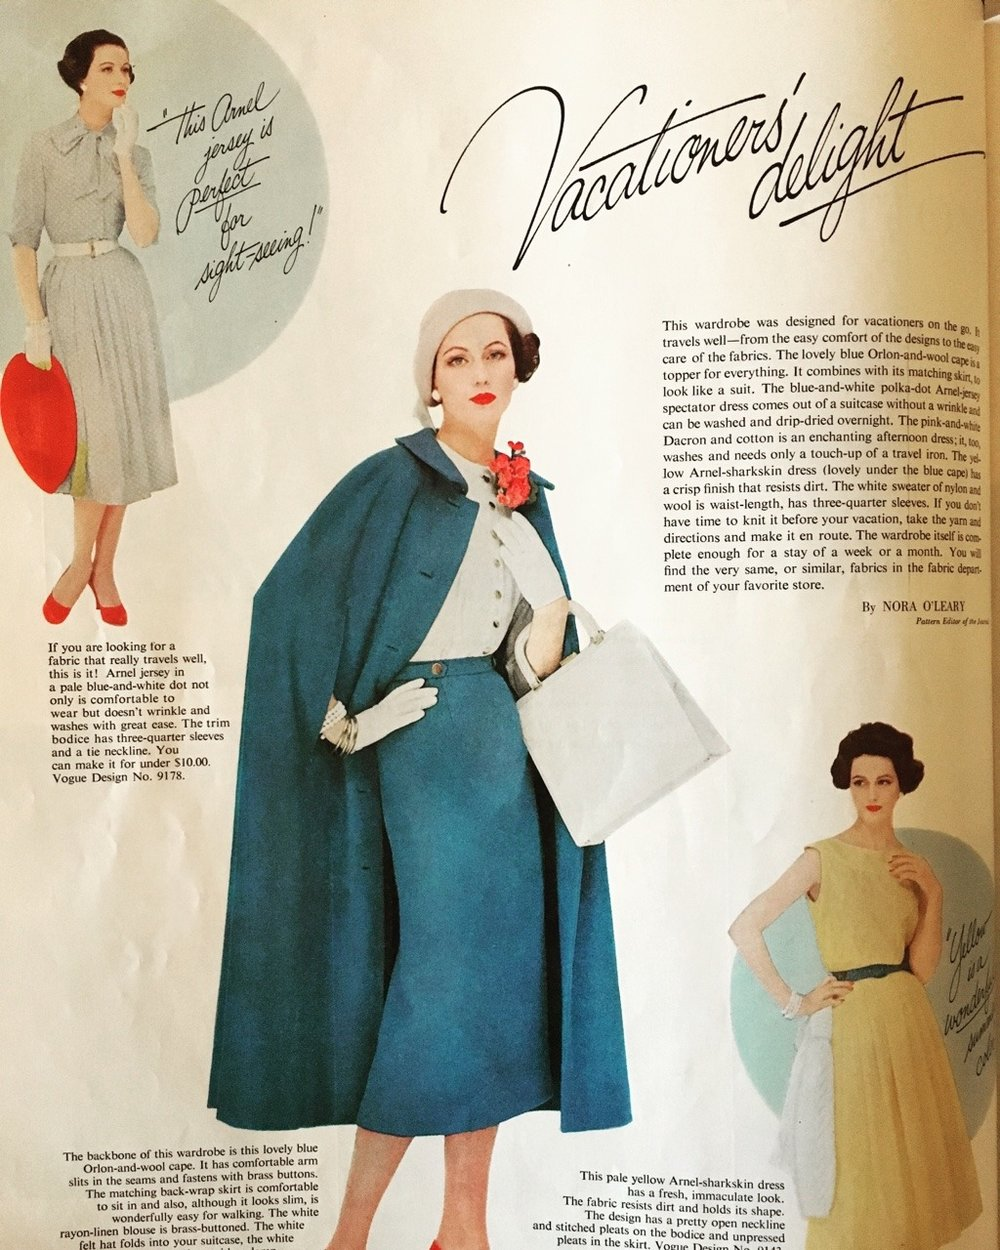 Vacationers' Delight. Ladies' Home Journal. May 1957.